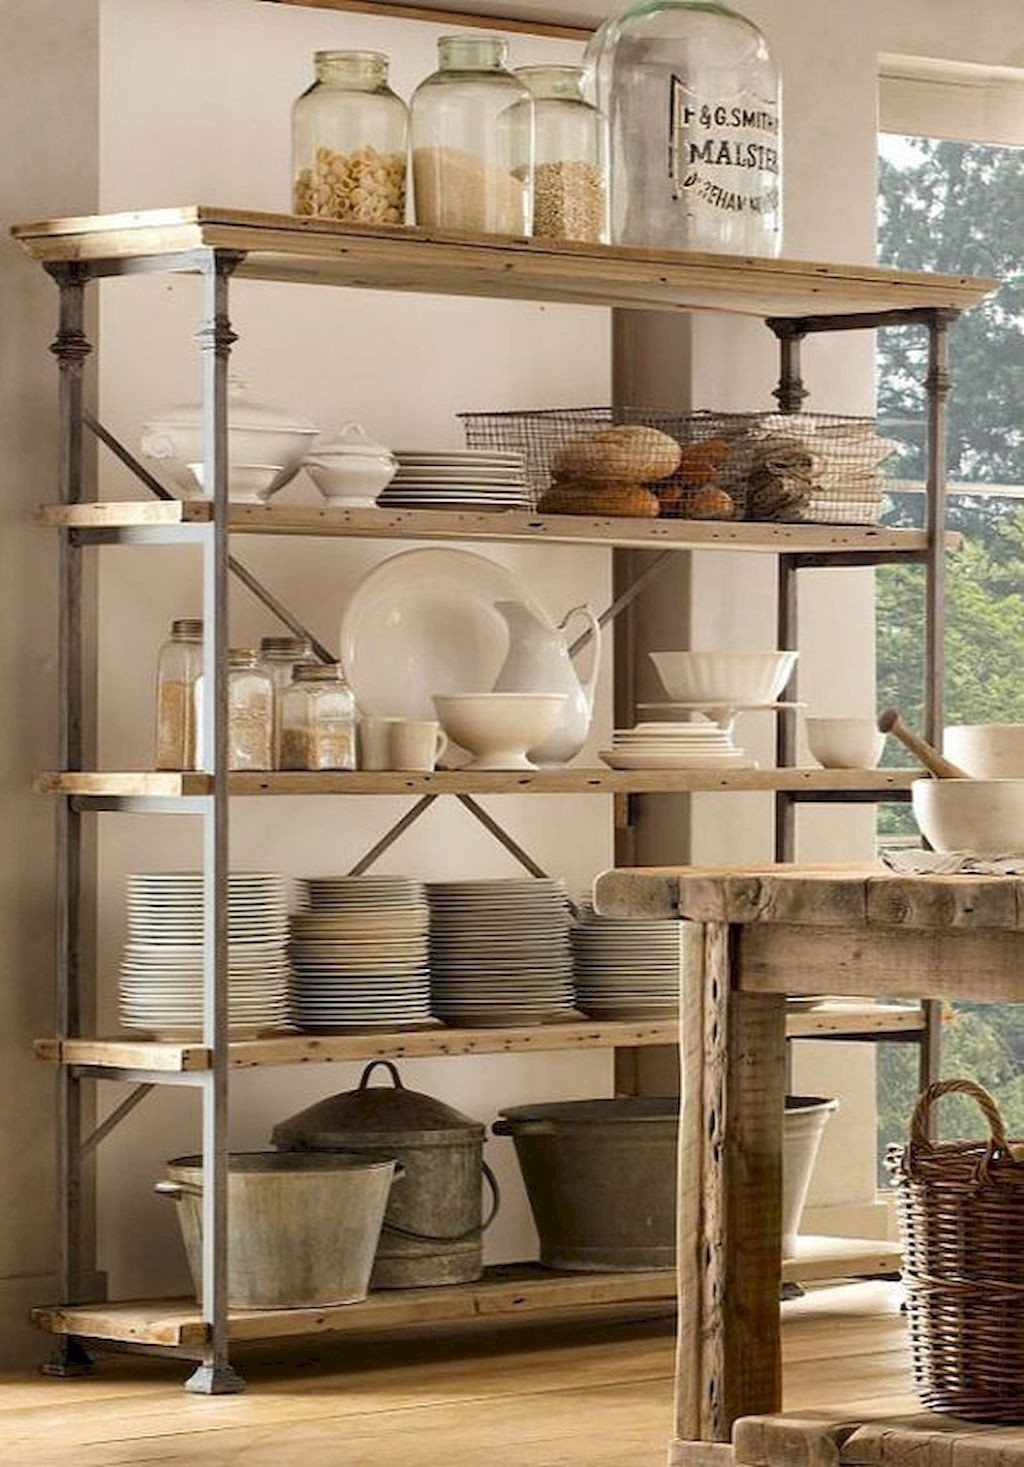 Delicieux French Vintage Bakers Rack Shelving And